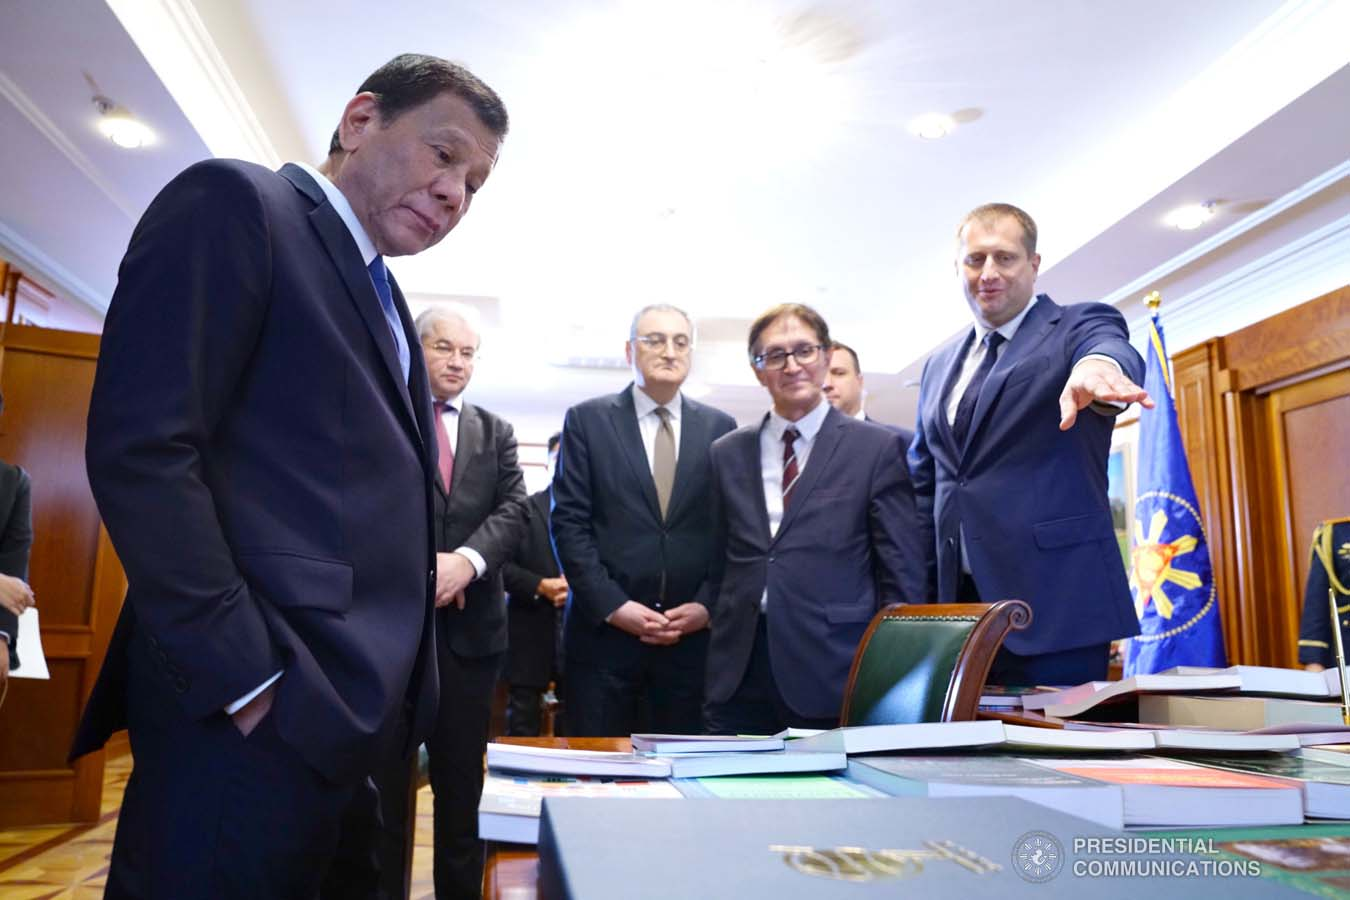 President Rodrigo Roa Duterte presents over 50 books about the Philippines to the officials of the Moscow State Institute of International Relations (MGIMO) University represented by Vice Rector Artem Malgin prior to the conferment of the honorary doctorate degree at the MGIMO University in Moscow, Russian Federation on October 05, 2019. JOEY DALUMPINES/PRESIDENTIAL PHOTO